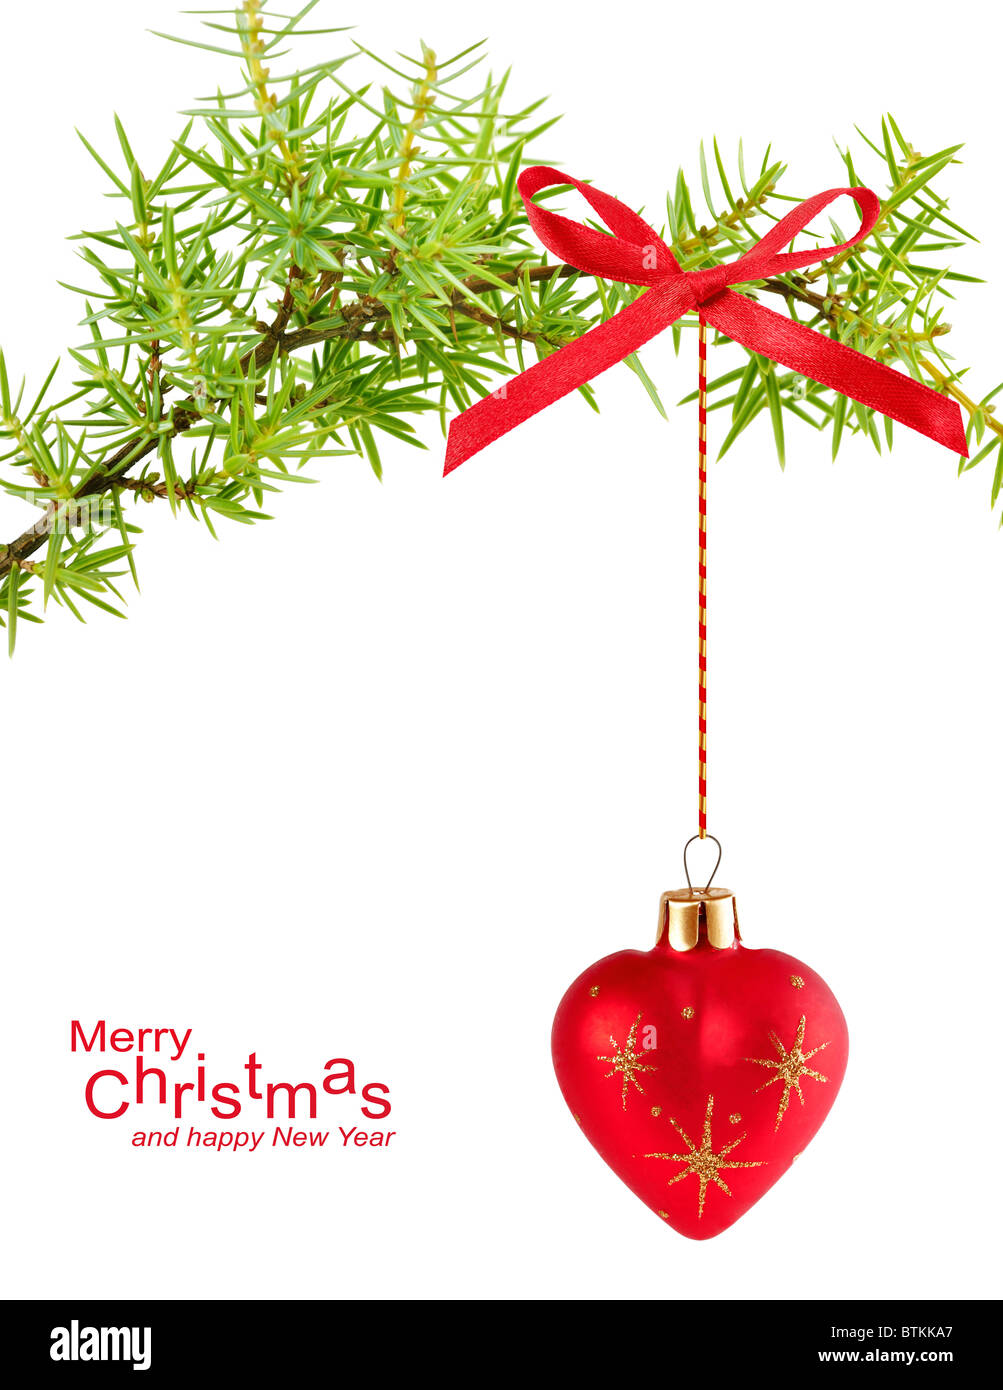 spruce branch with Christmas ball in the form of heart - Stock Image